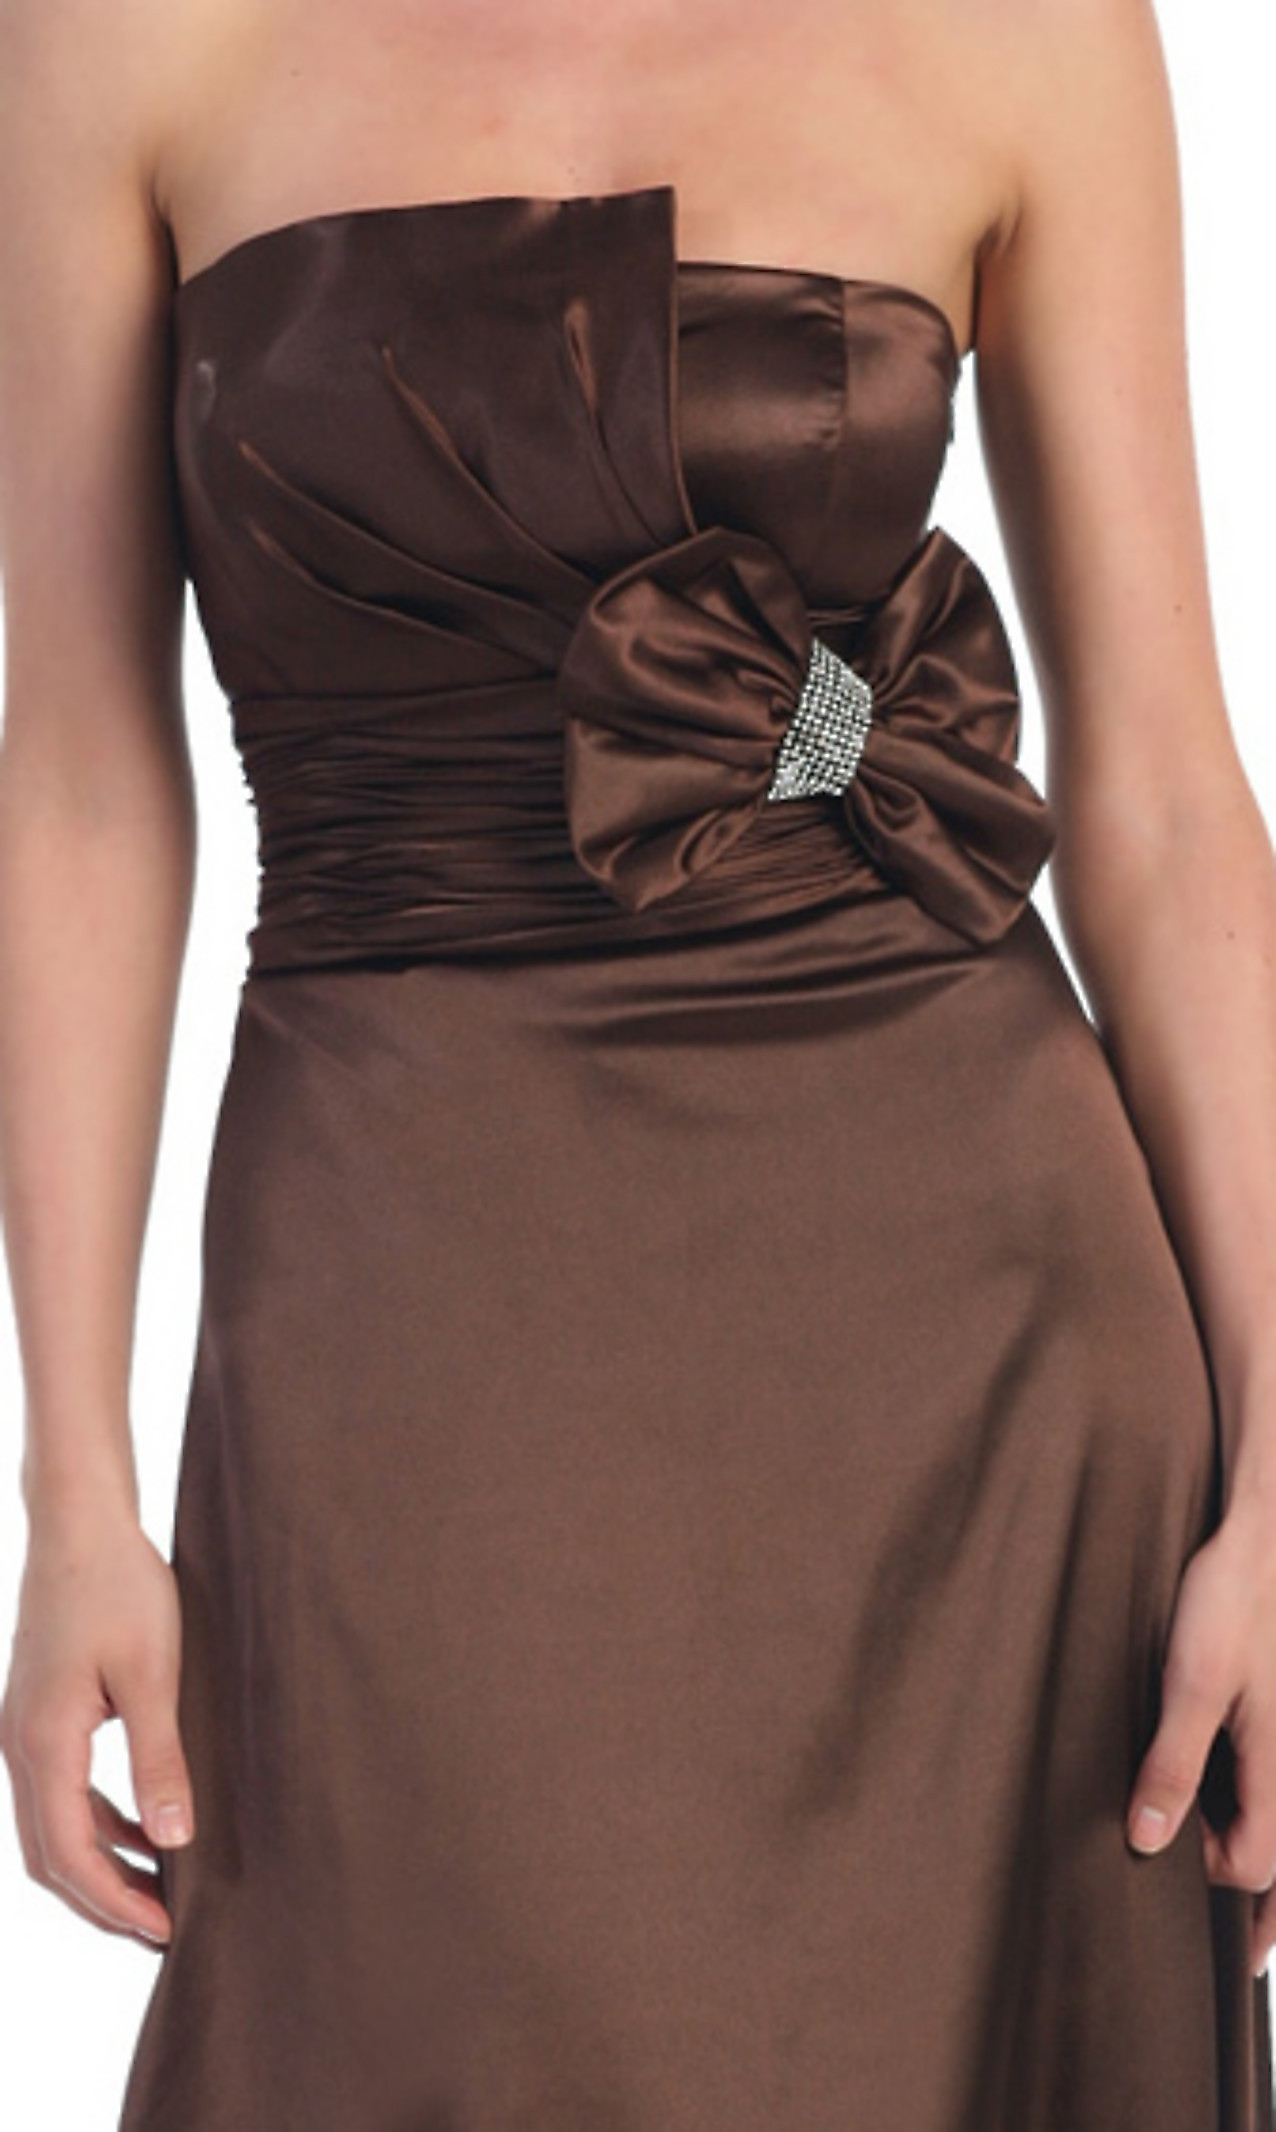 Scalloped-Edge Neck Chocolate Silky Satin Floor Length Mother Gown of Bow Tie at Bodice : SG1594 : $369.98